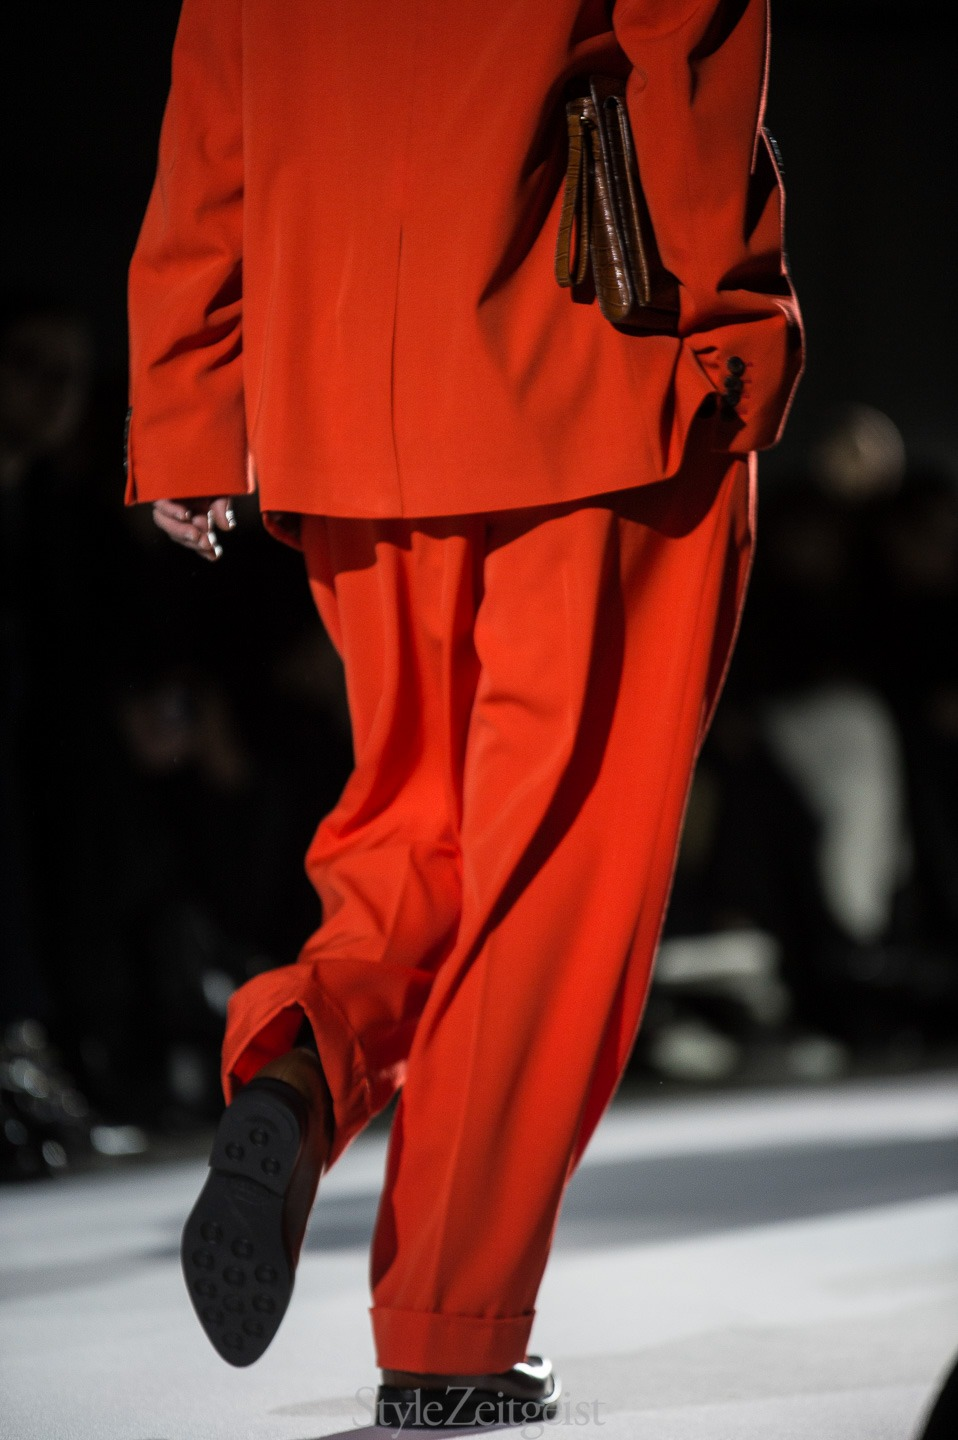 StyleZeitgeist Dries Van Noten F/W17 Women's - Paris Fashion    StyleZeitgeist Dries Van Noten F/W17 Women's - Paris Fashion    StyleZeitgeist Dries Van Noten F/W17 Women's - Paris Fashion